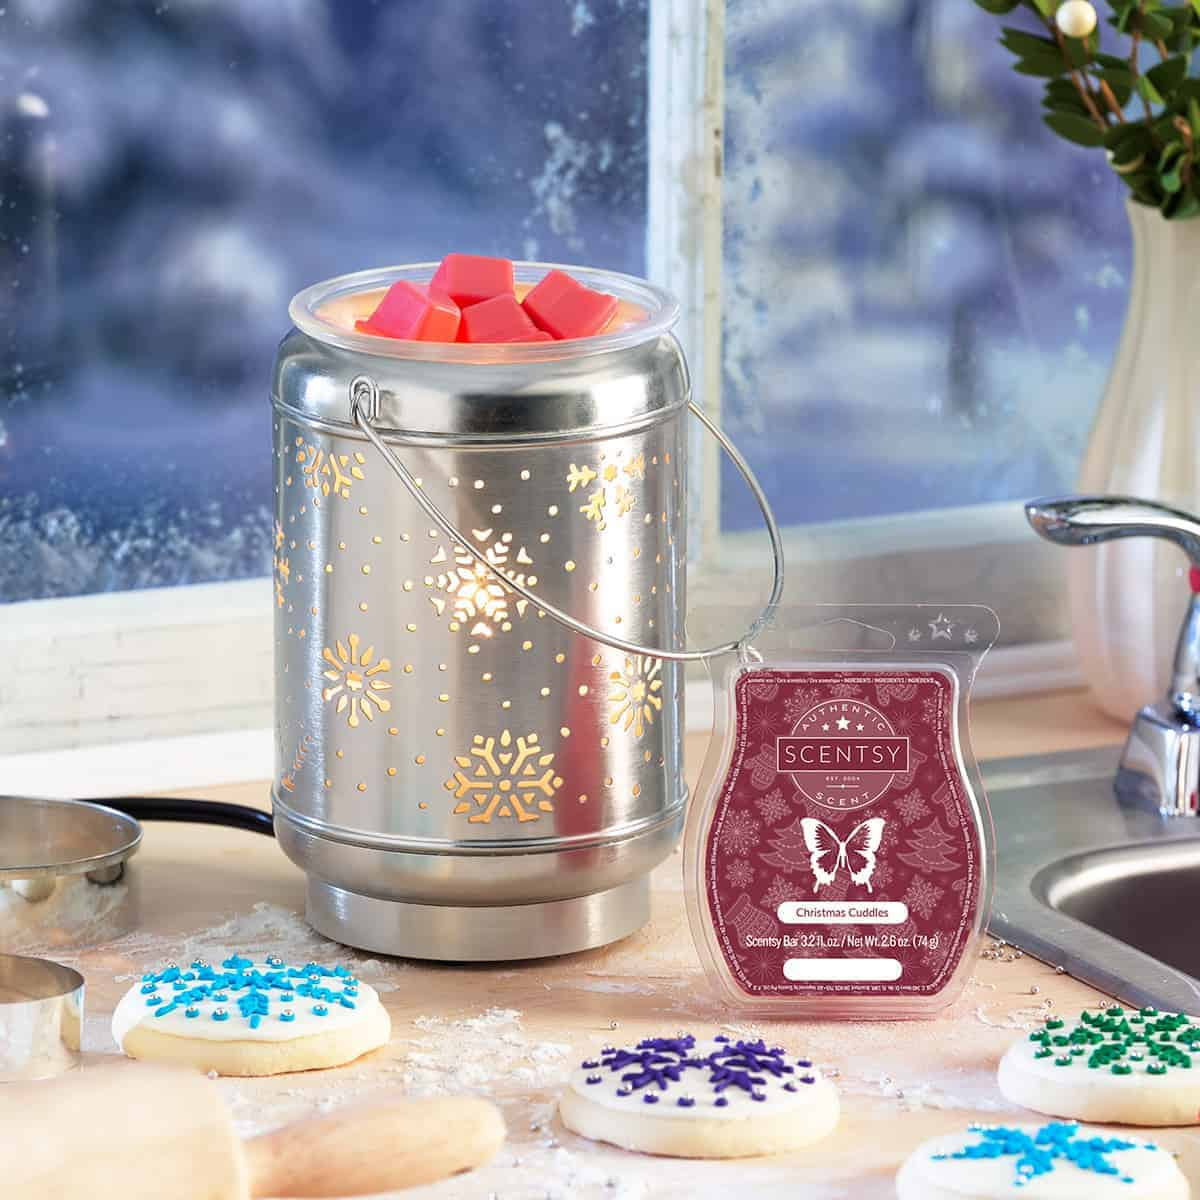 Scentsy Solitude Warmer December 2018 Warmer Of The